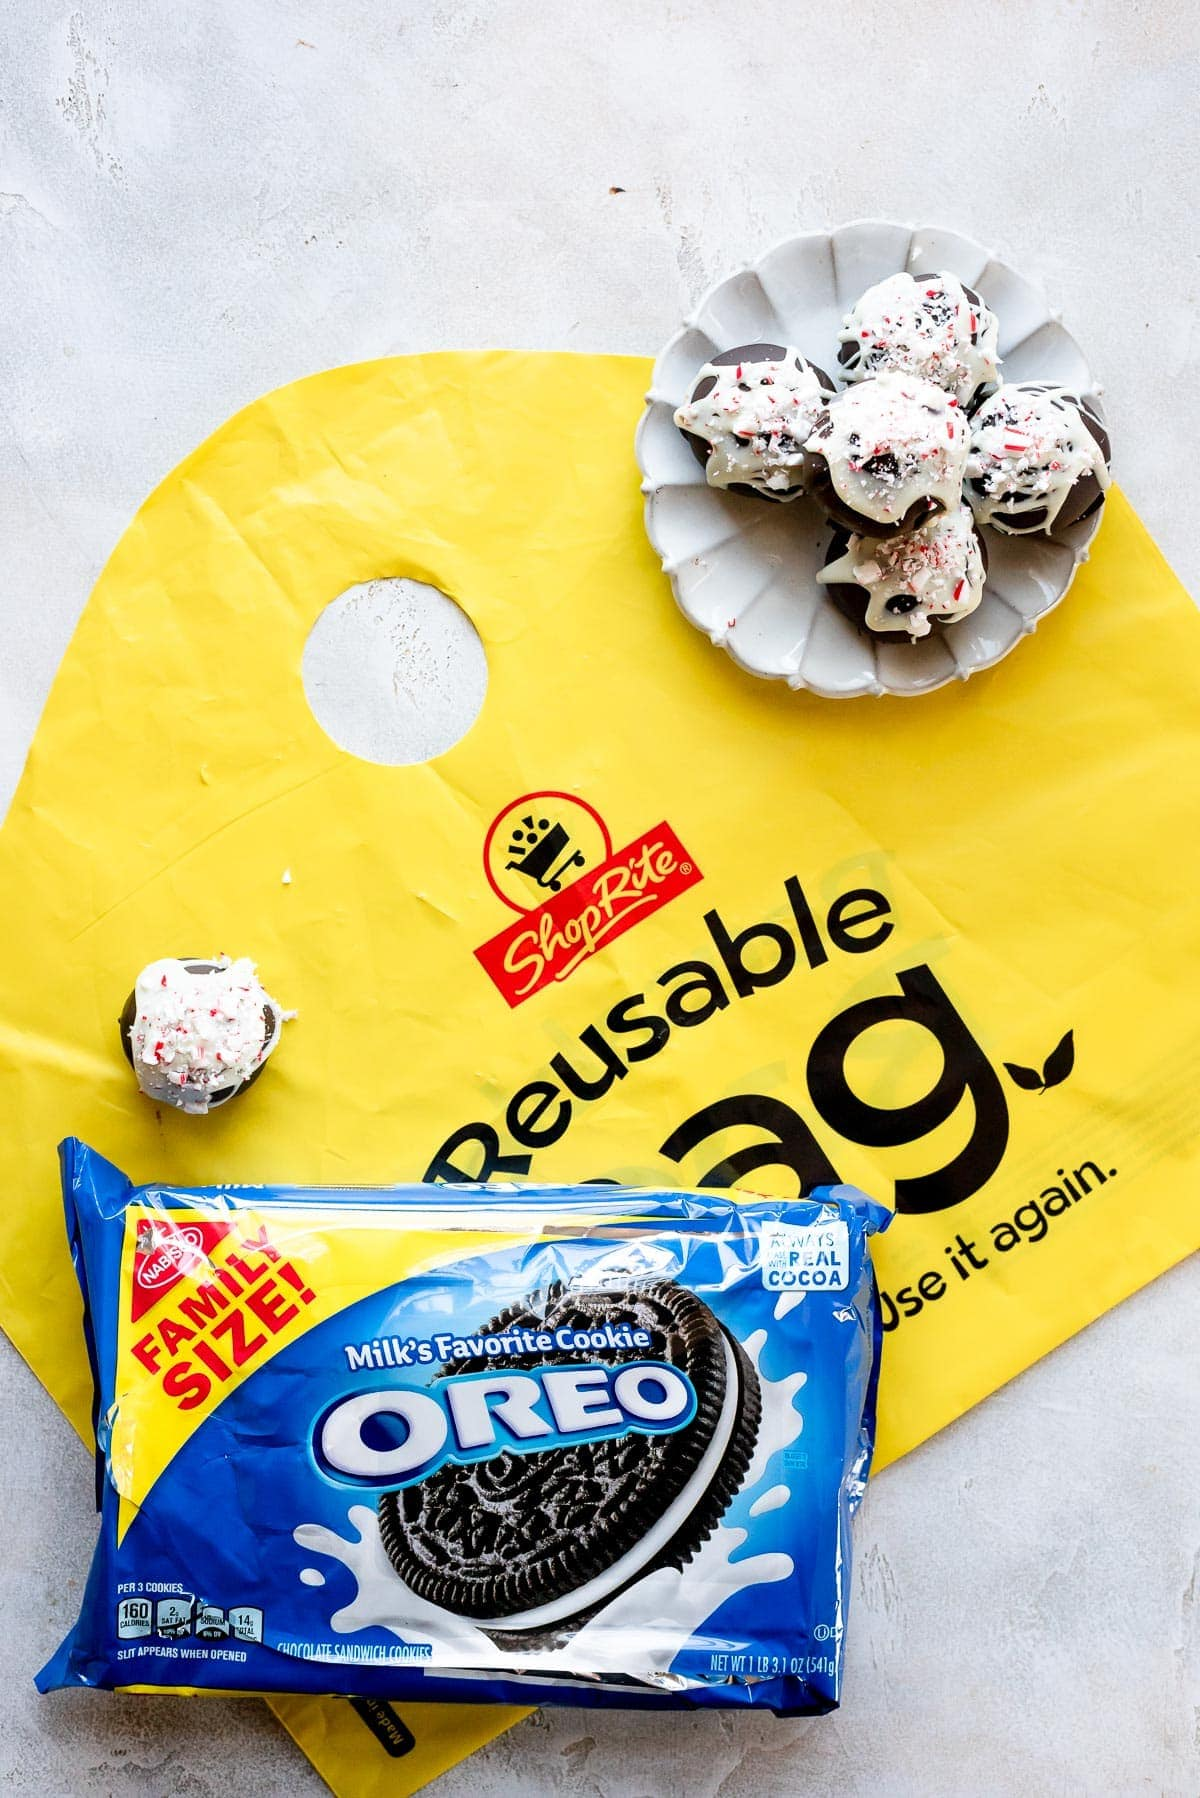 plate of oreo balls on table next to reusable shoprite bag and oreo package